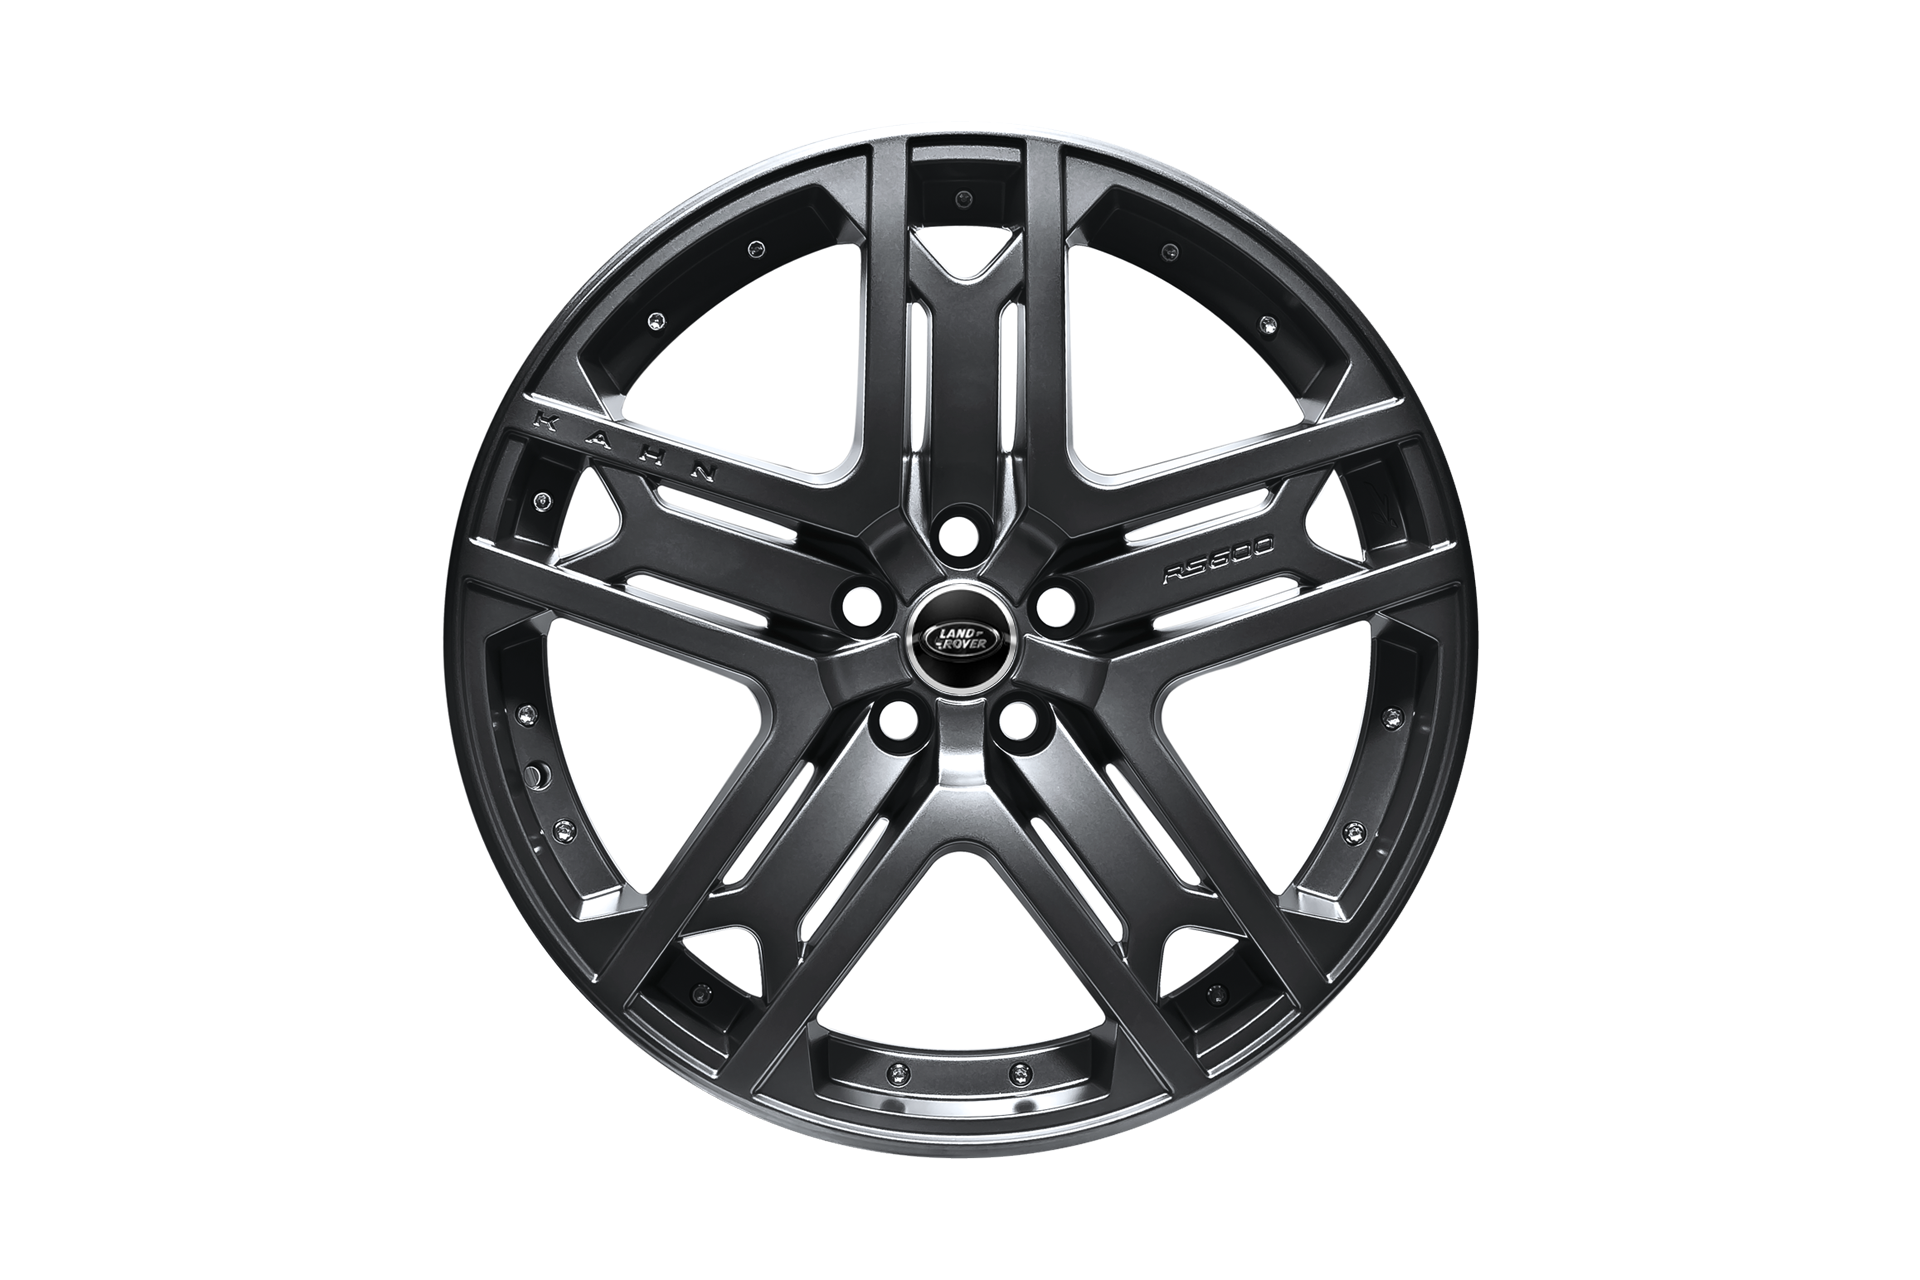 Land Rover Discovery Sport (2016-2019) Rs600 Light Alloy Wheels by Kahn - Image 3889